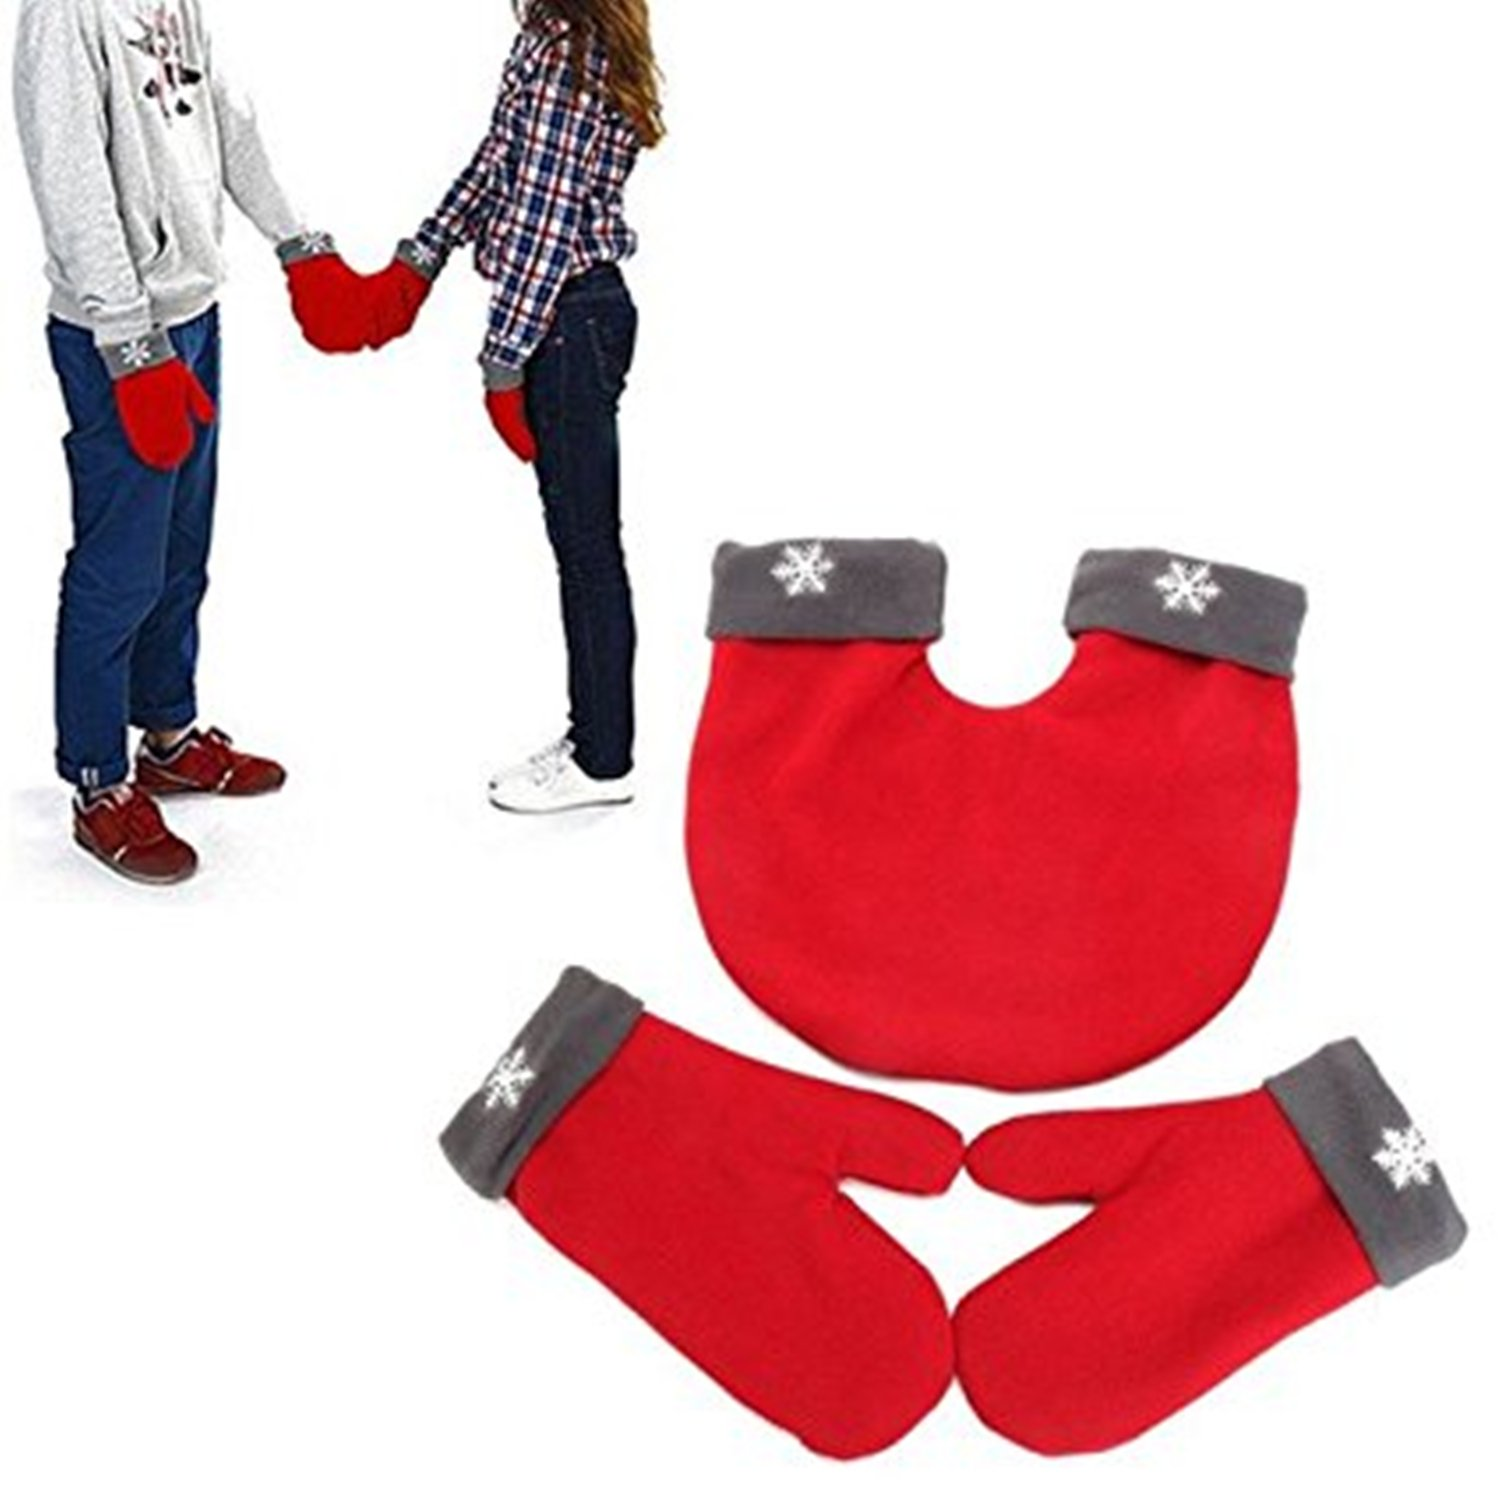 Mai Poetry Christmas Lovers Couples Snowflake Winter Mittens Gloves Valentine's Gift (Black)